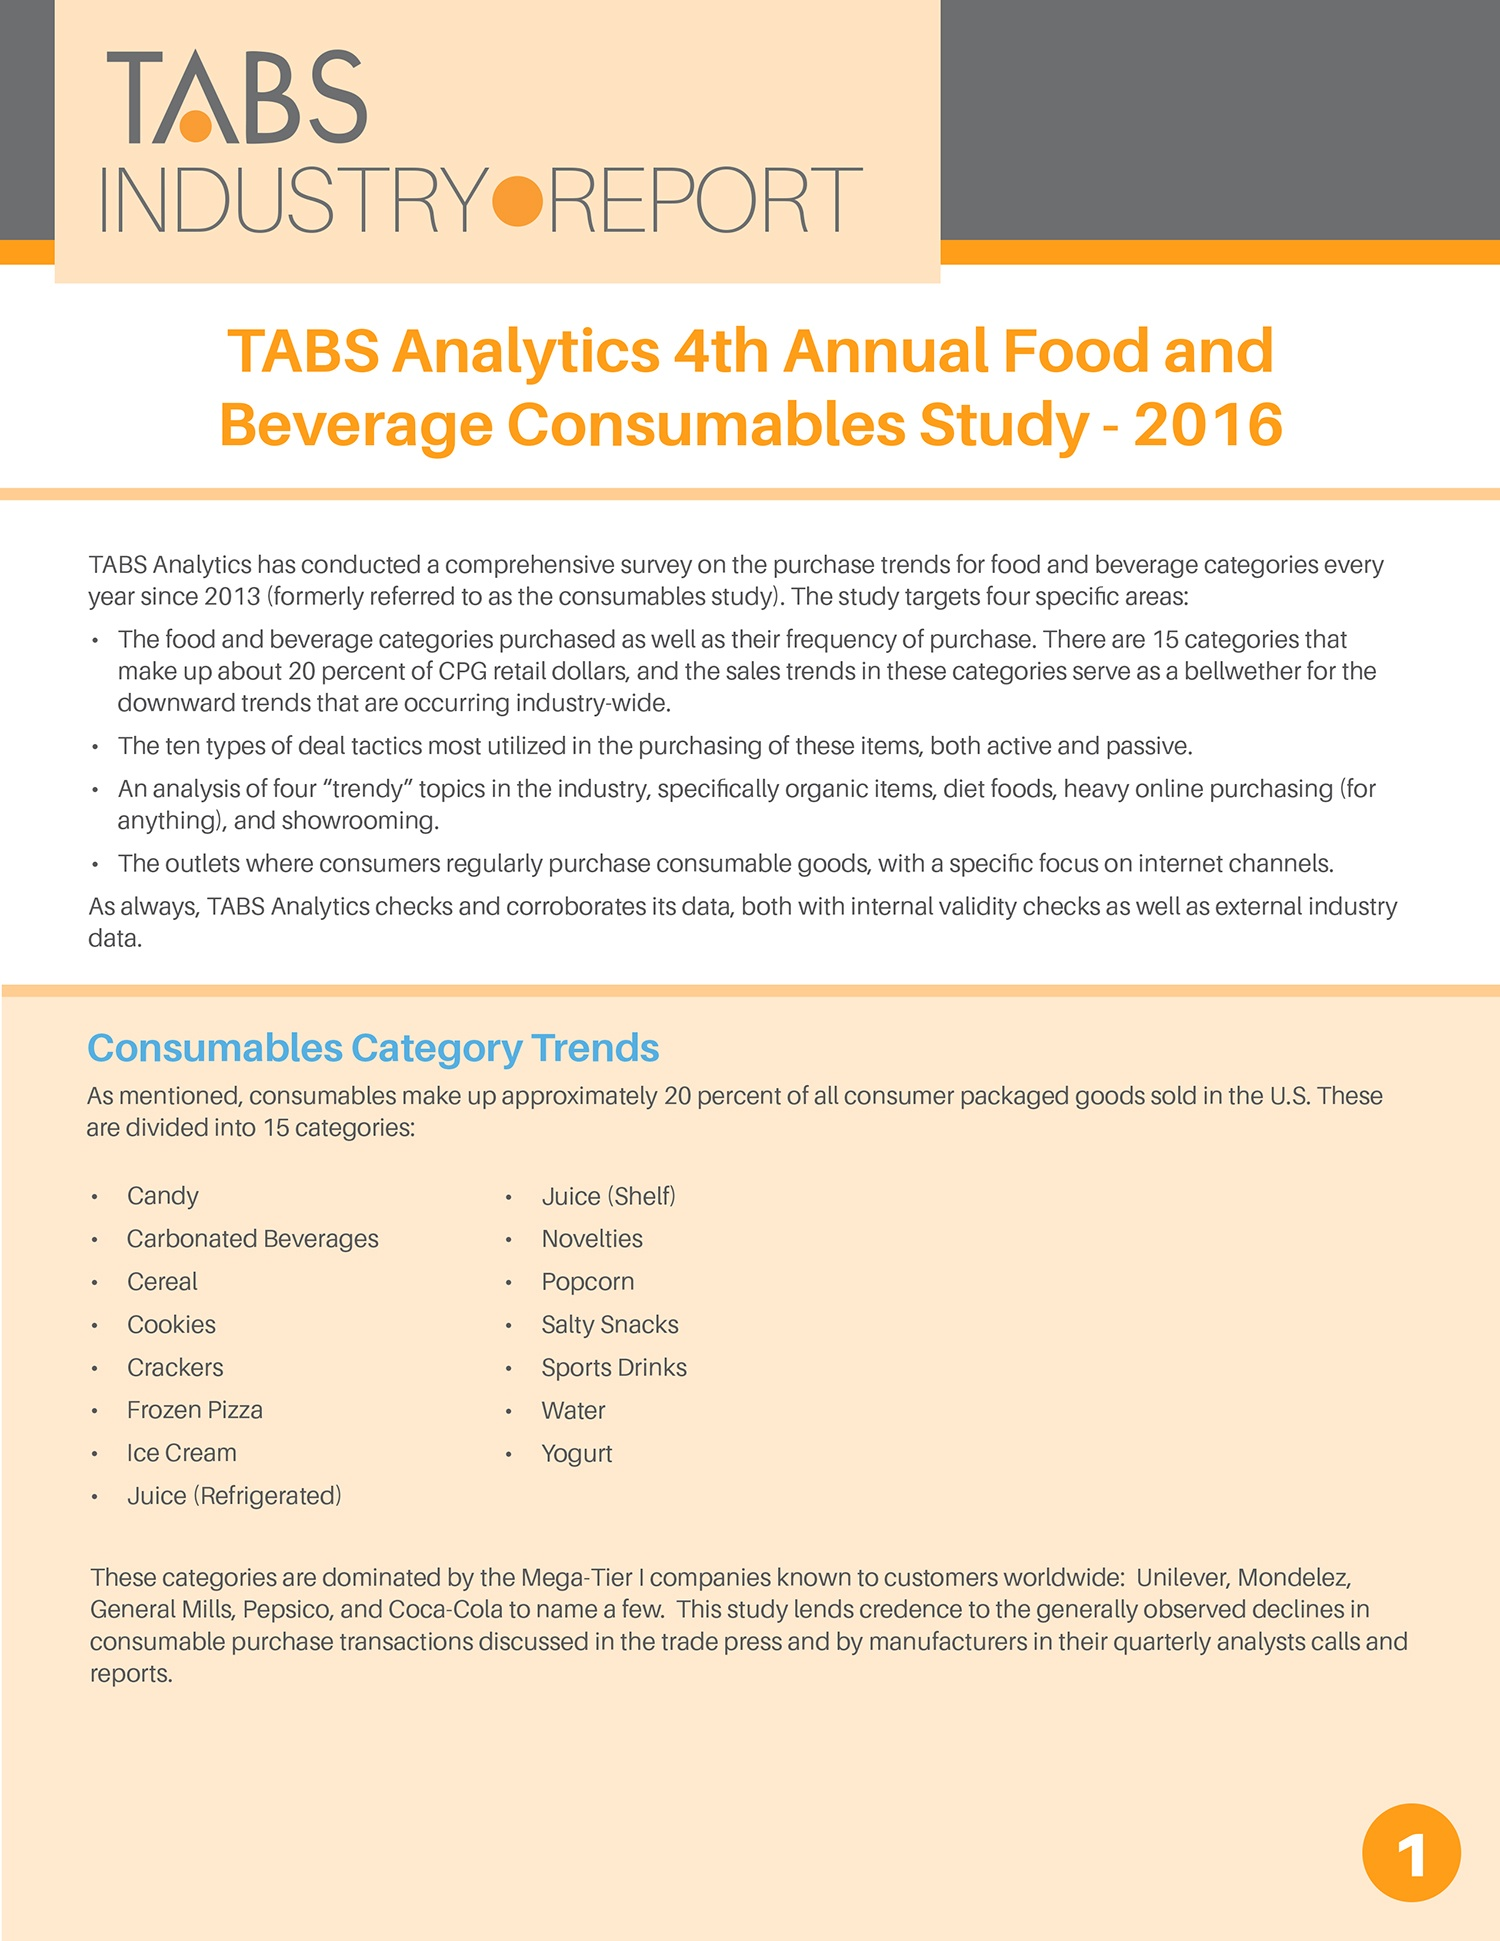 4th_Annual_Food_and_Beverage_Consumable_Study-1.jpg